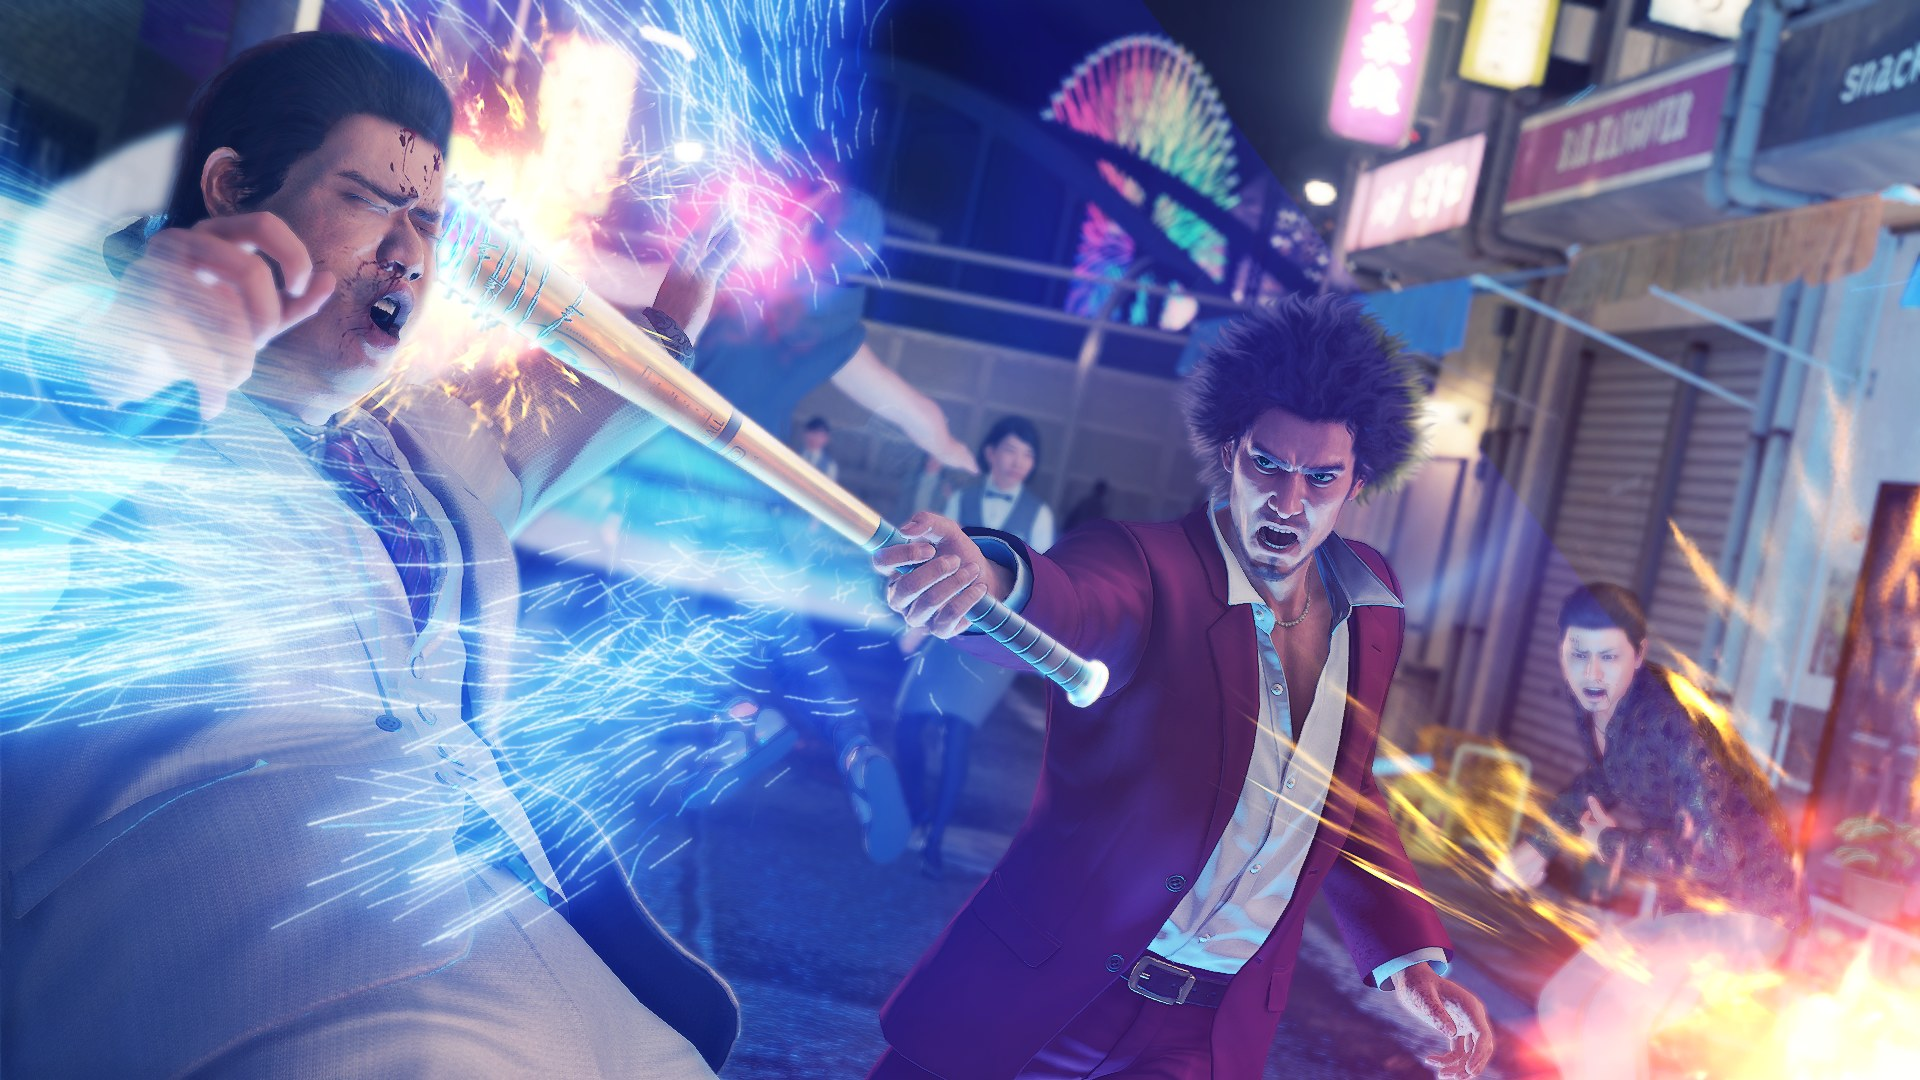 Yakuza: Like A Dragon protagonist Kasuga swings a bat in a big arc of purple lightning, smacking a bad guy in the face with it